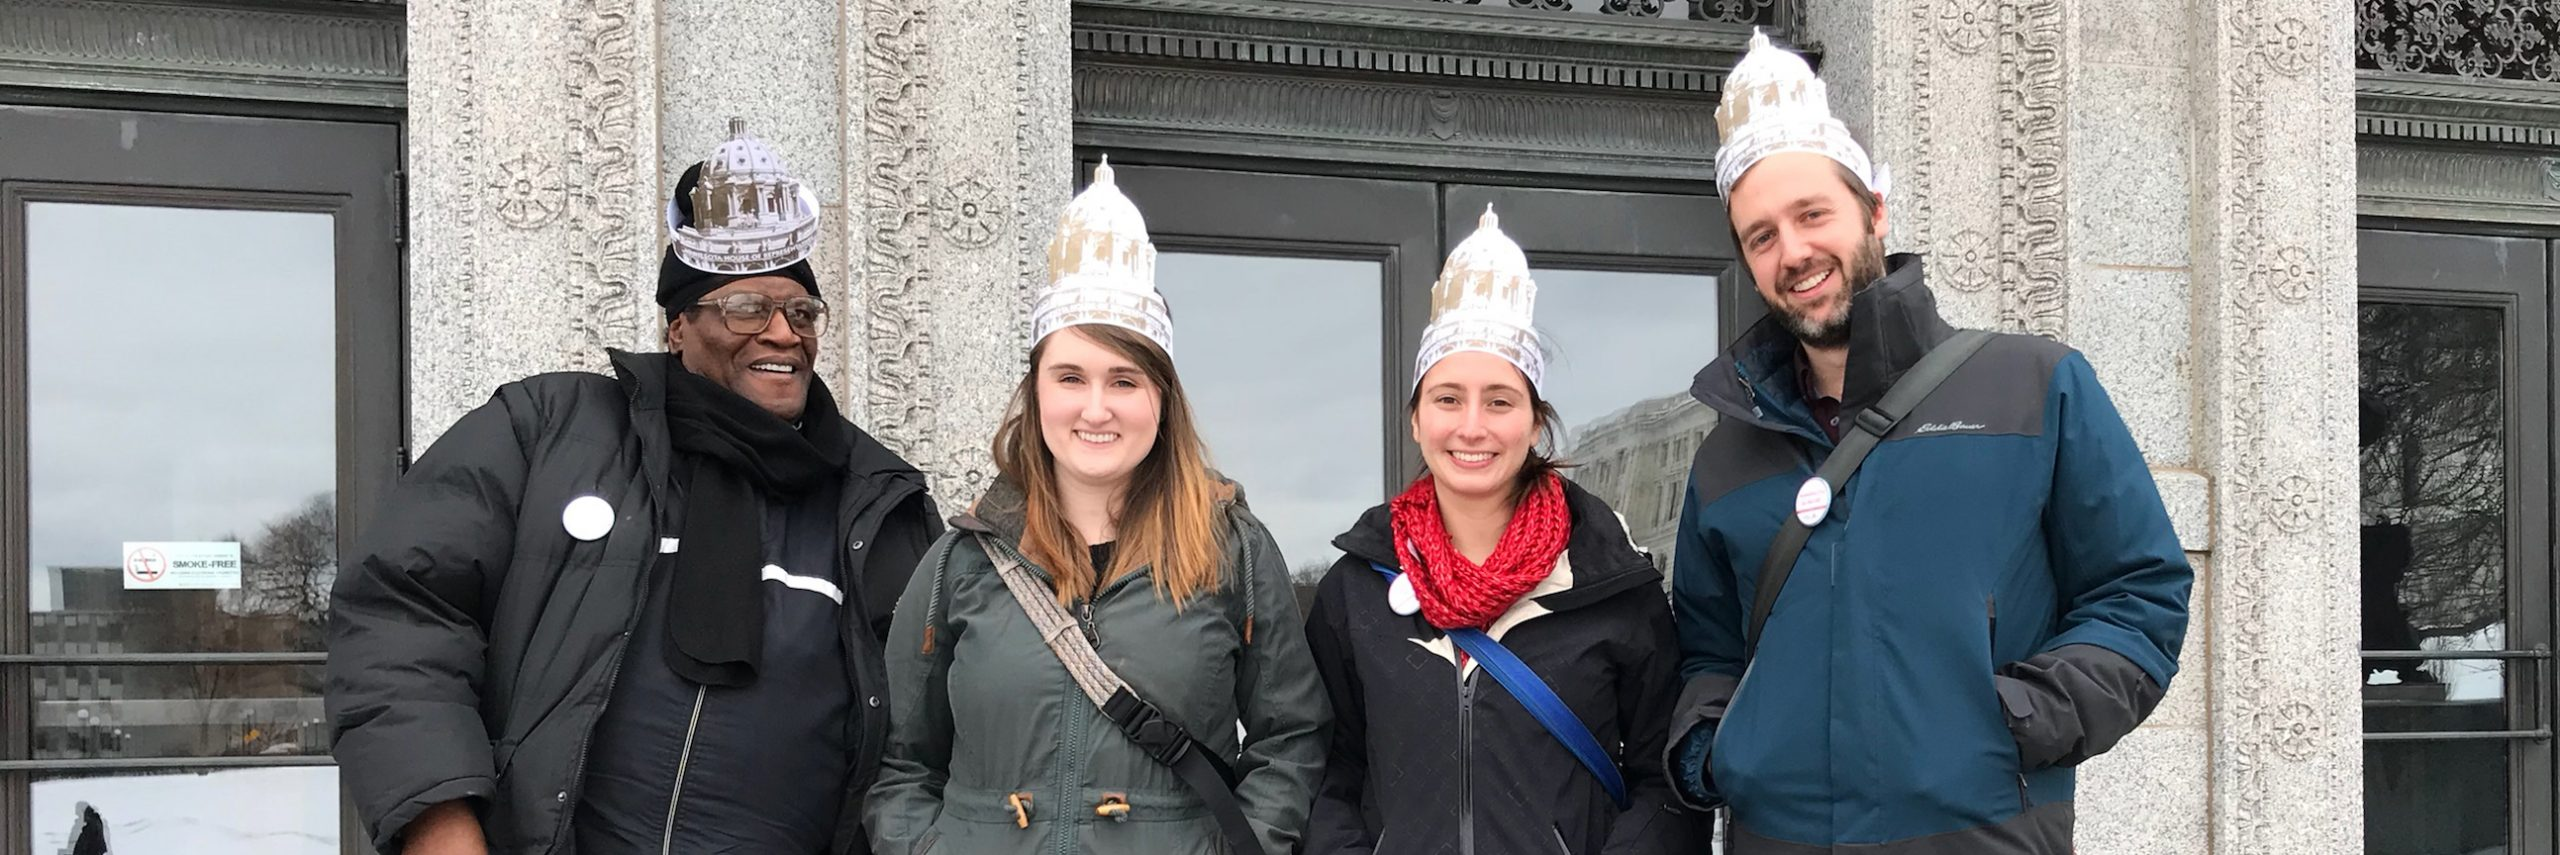 Elligah and case managers Emily, Renate, and Tim stand in front of the Capitol wearing jackets and paper hats cut into the shape of the Capitol building